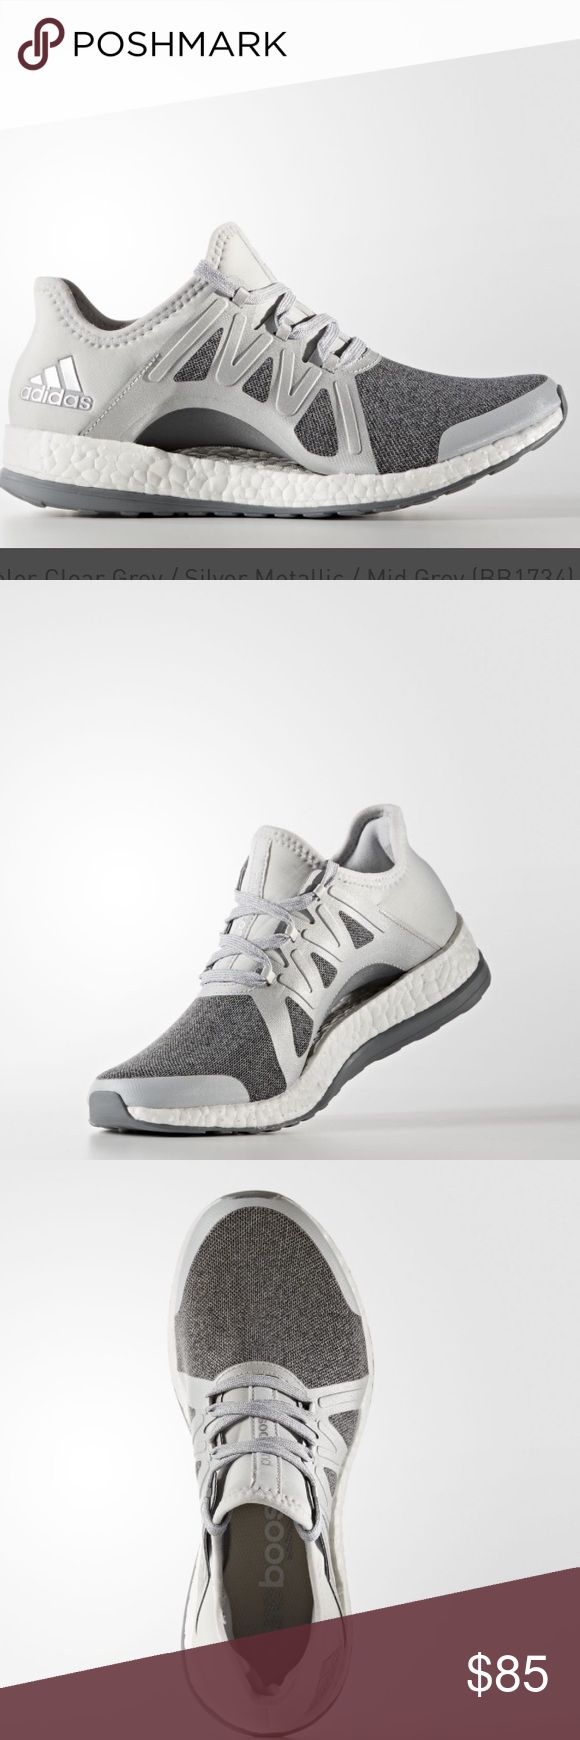 NWOB Adidas Pureboost Xpose. Sz 8.5 NWOB Adidas Pureboost Xpose. Sz 8.5. Silver, grey and white tone. Never worn. Reposhing- didn't like the style on me. Very comfy when tried on and is true to size. 💕 adidas Shoes Athletic Shoes